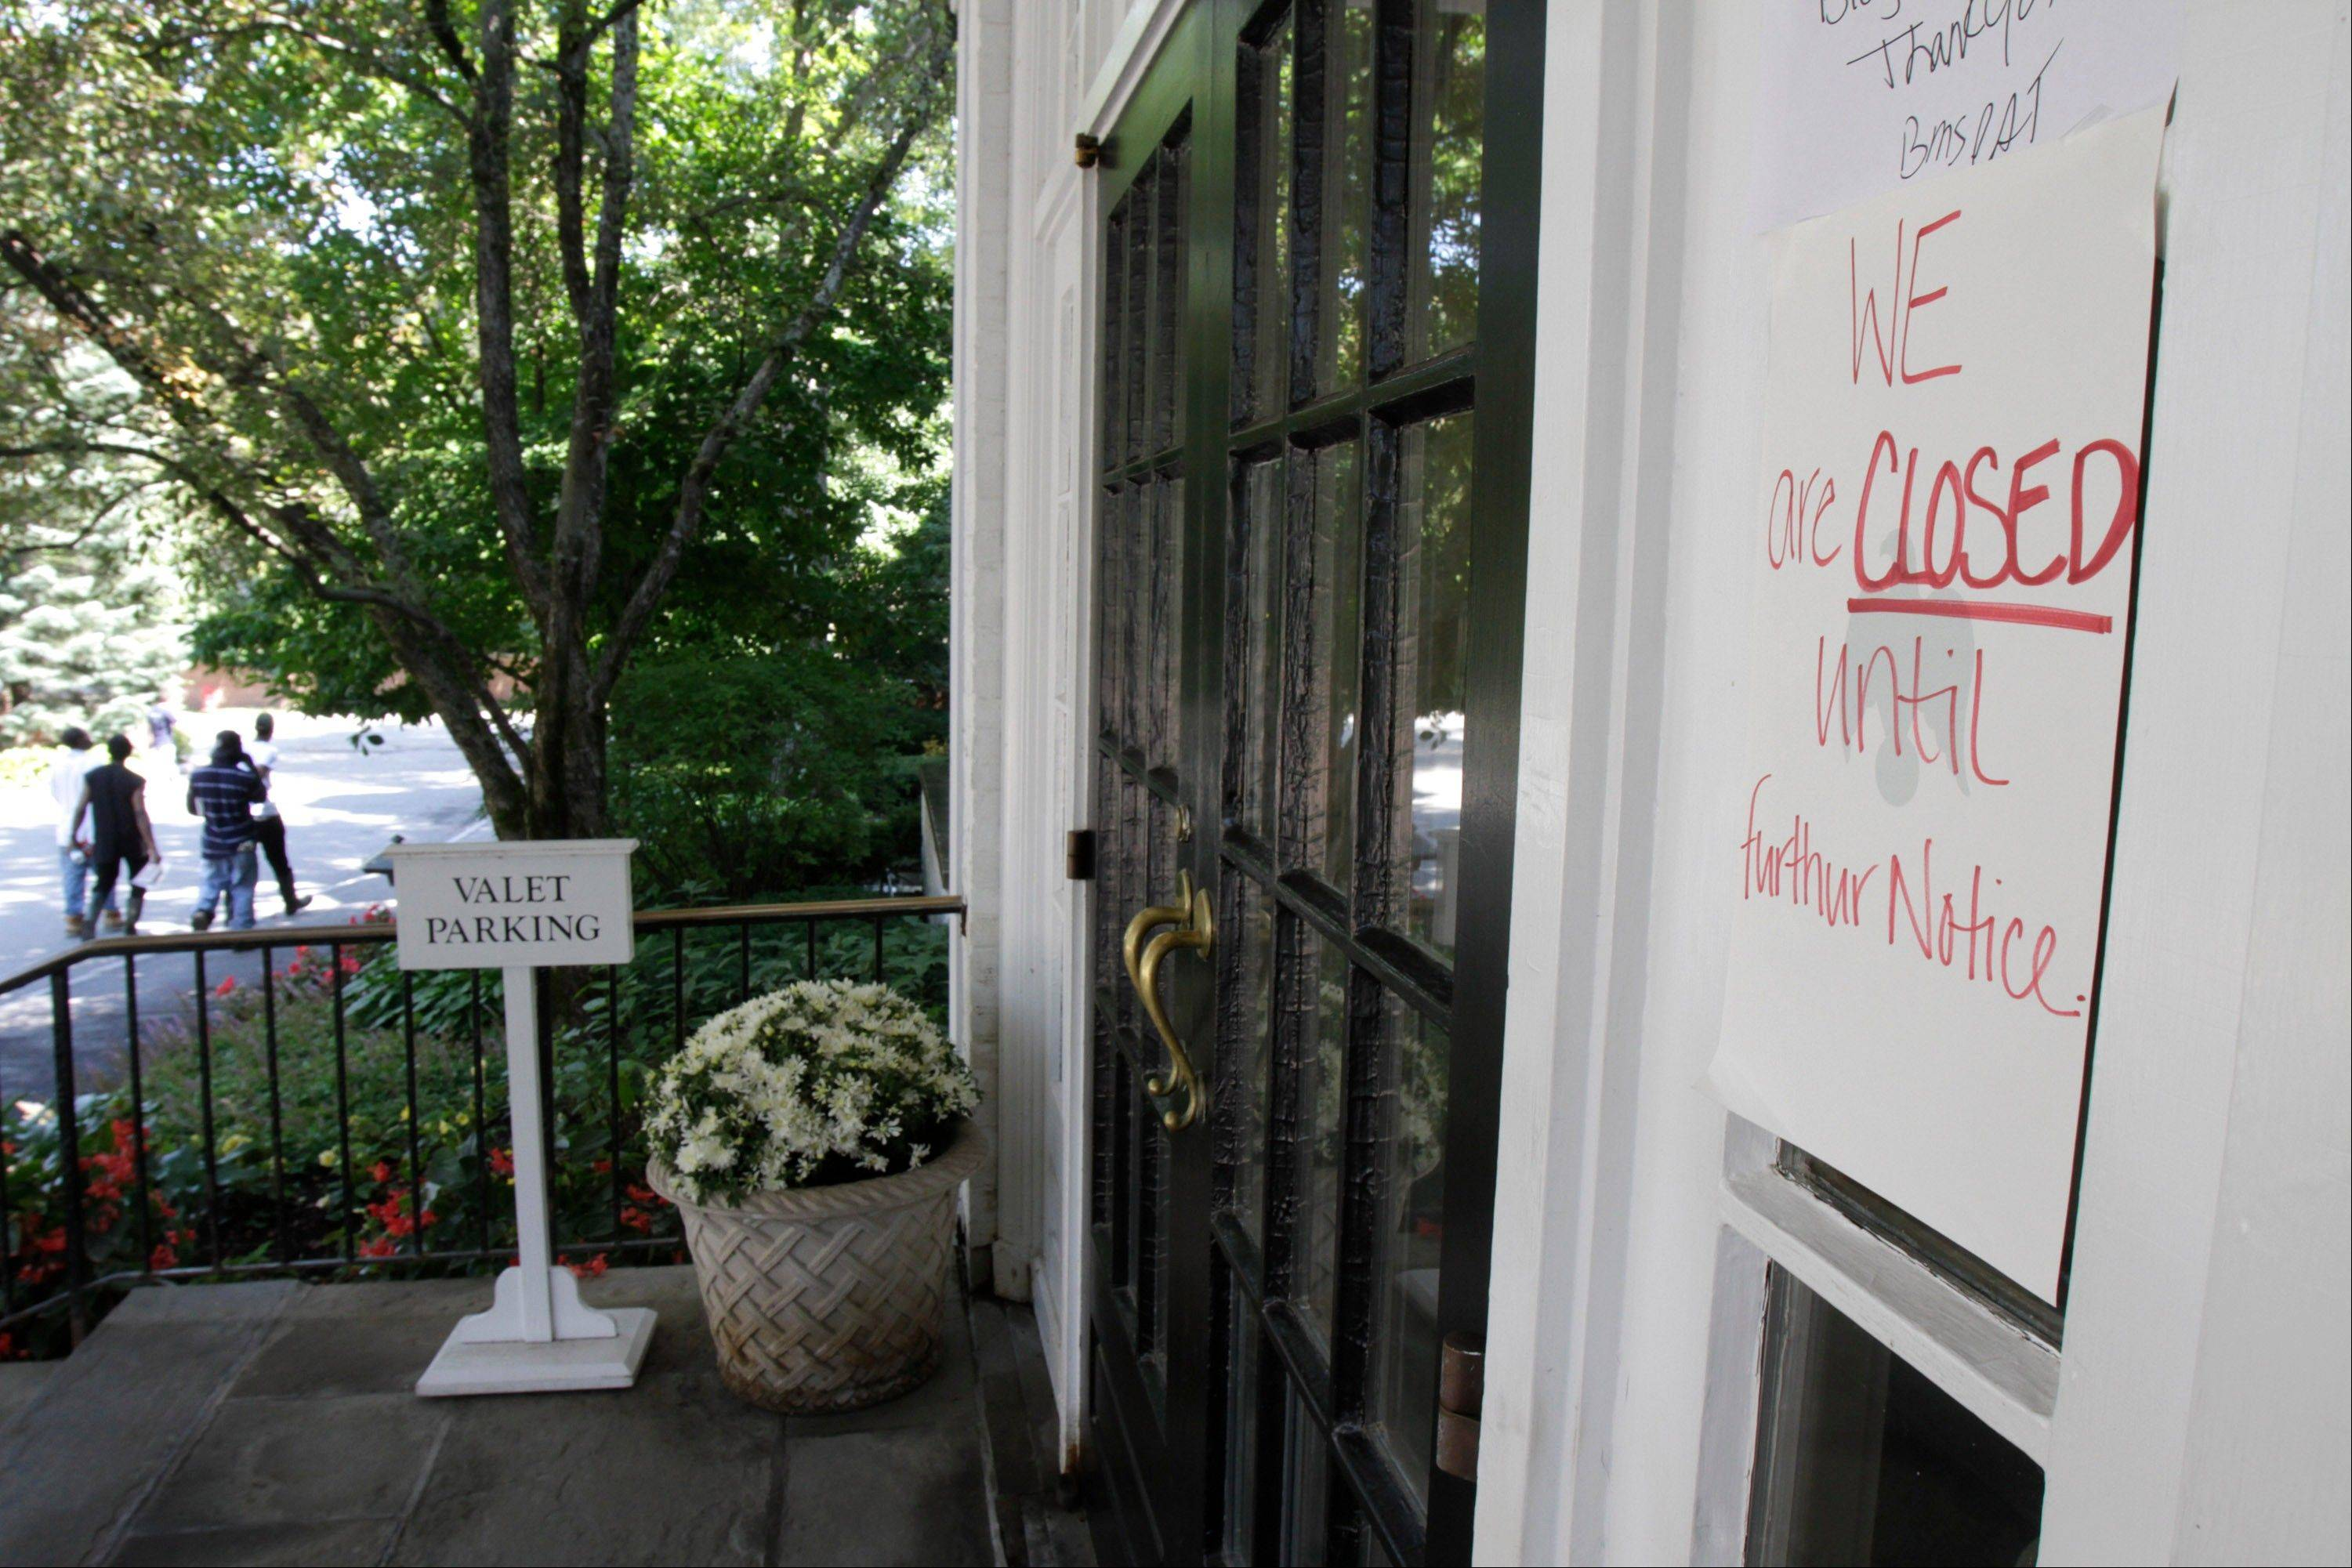 The Woodstock Inn displays a closed sign after suffering water damage from Hurricane Irene.